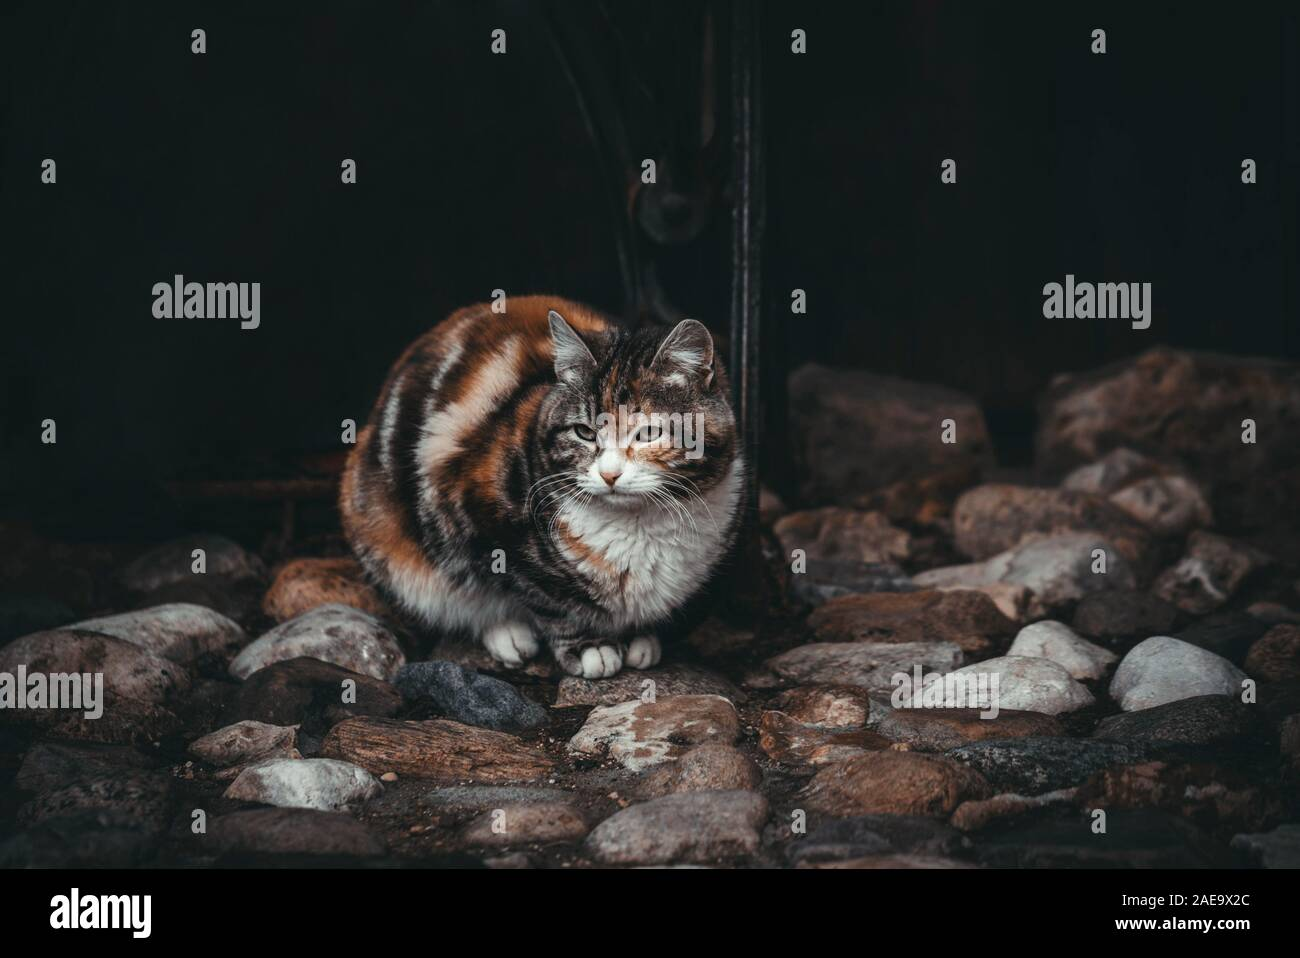 Sad cat on a black background. Waiting for the owner. Beautiful colorful cat on colorful stones. Street cats. Stock Photo